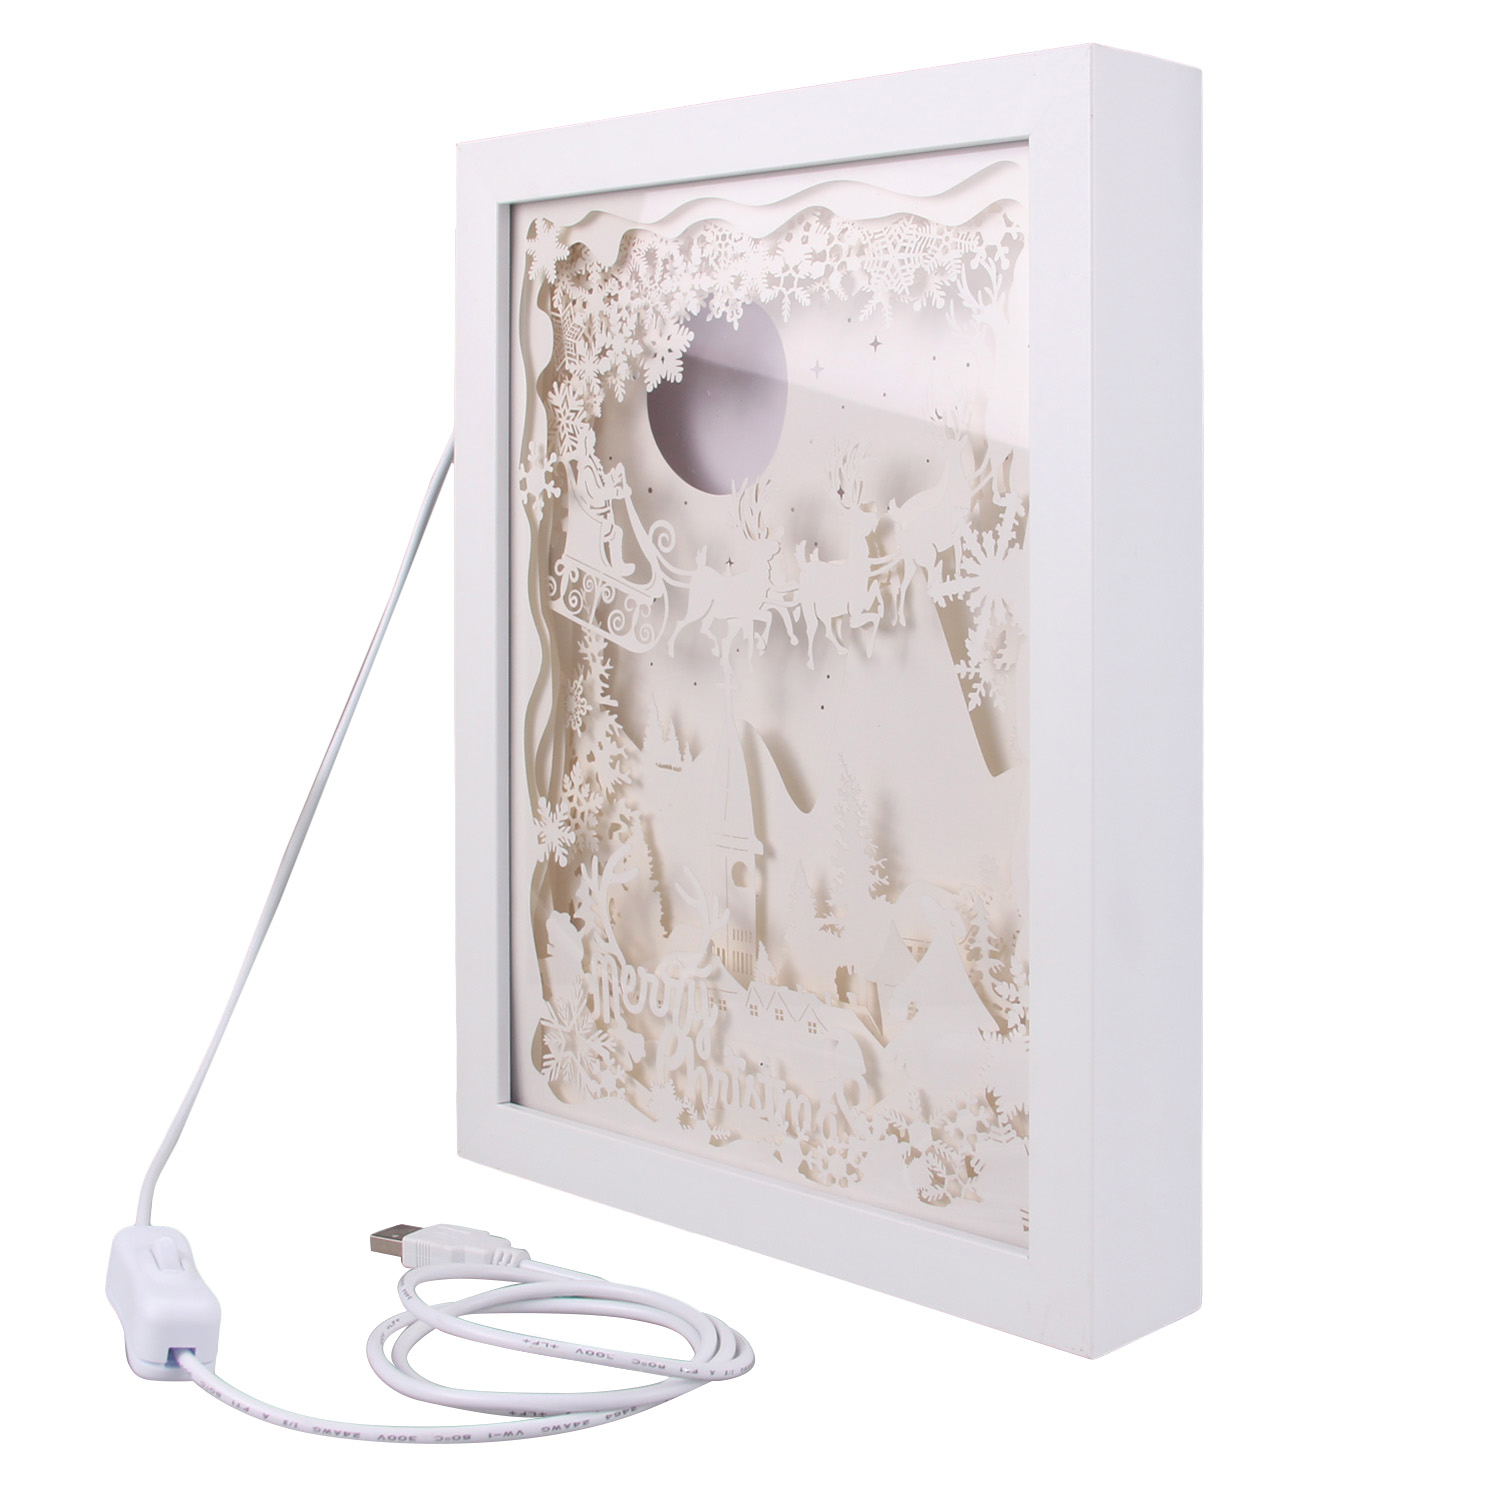 Merry Christmas 3D Shadow Box Paper Carving Papercut LED Night Lamp Light for Bedroom Coffee Shop Tea House Gift Decoration